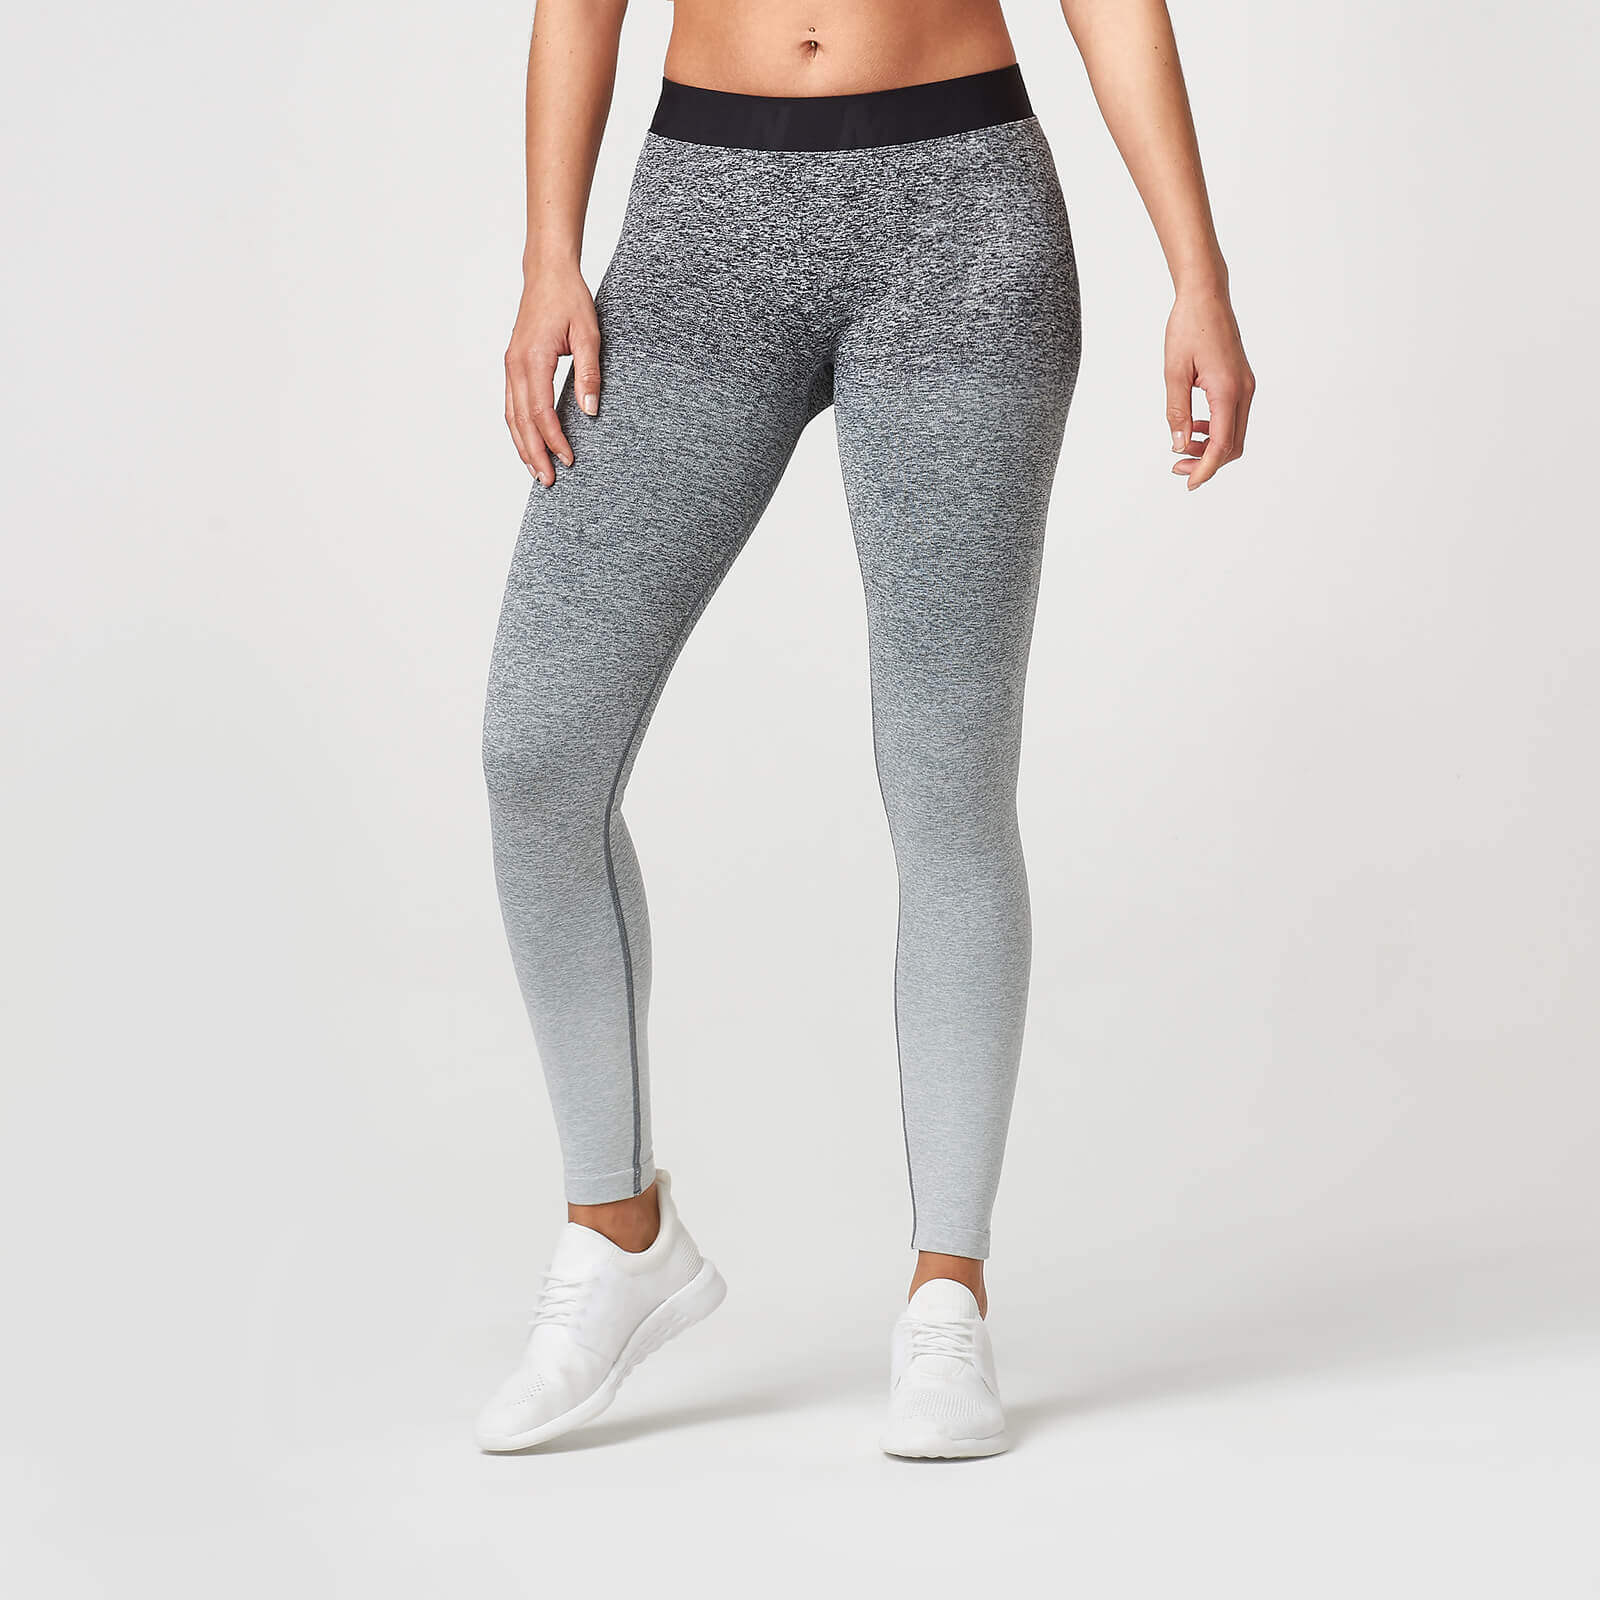 Myprotein Ombre Seamless Leggings - Black - L